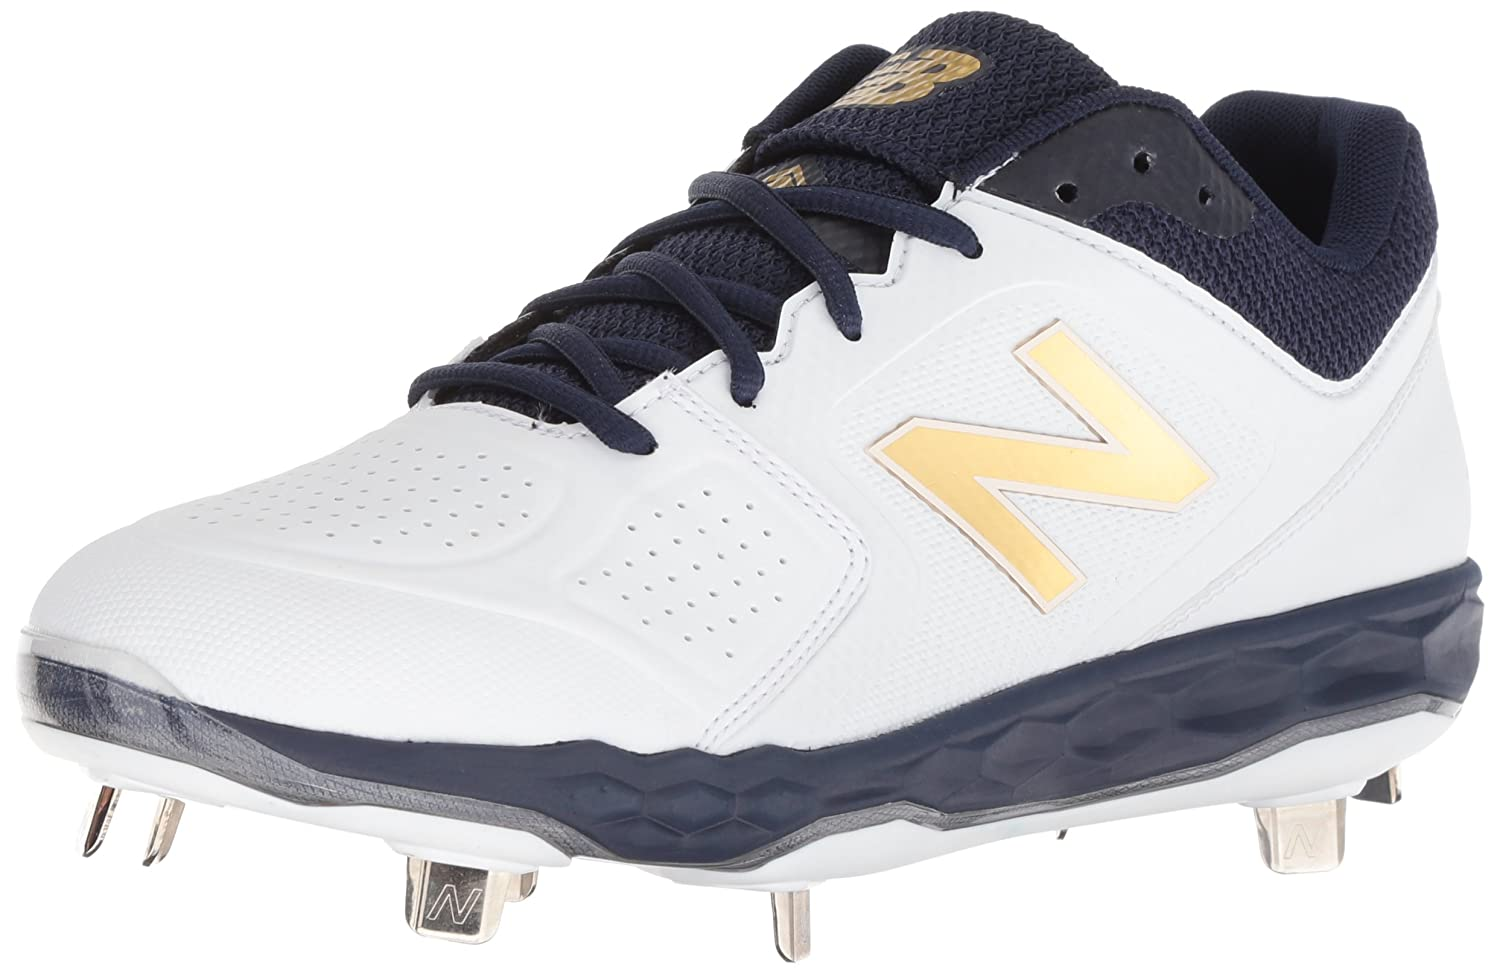 New Balance Women's Velo V1 Metal Softball Shoe B075R7FK8L 8 B(M) US|Navy/White